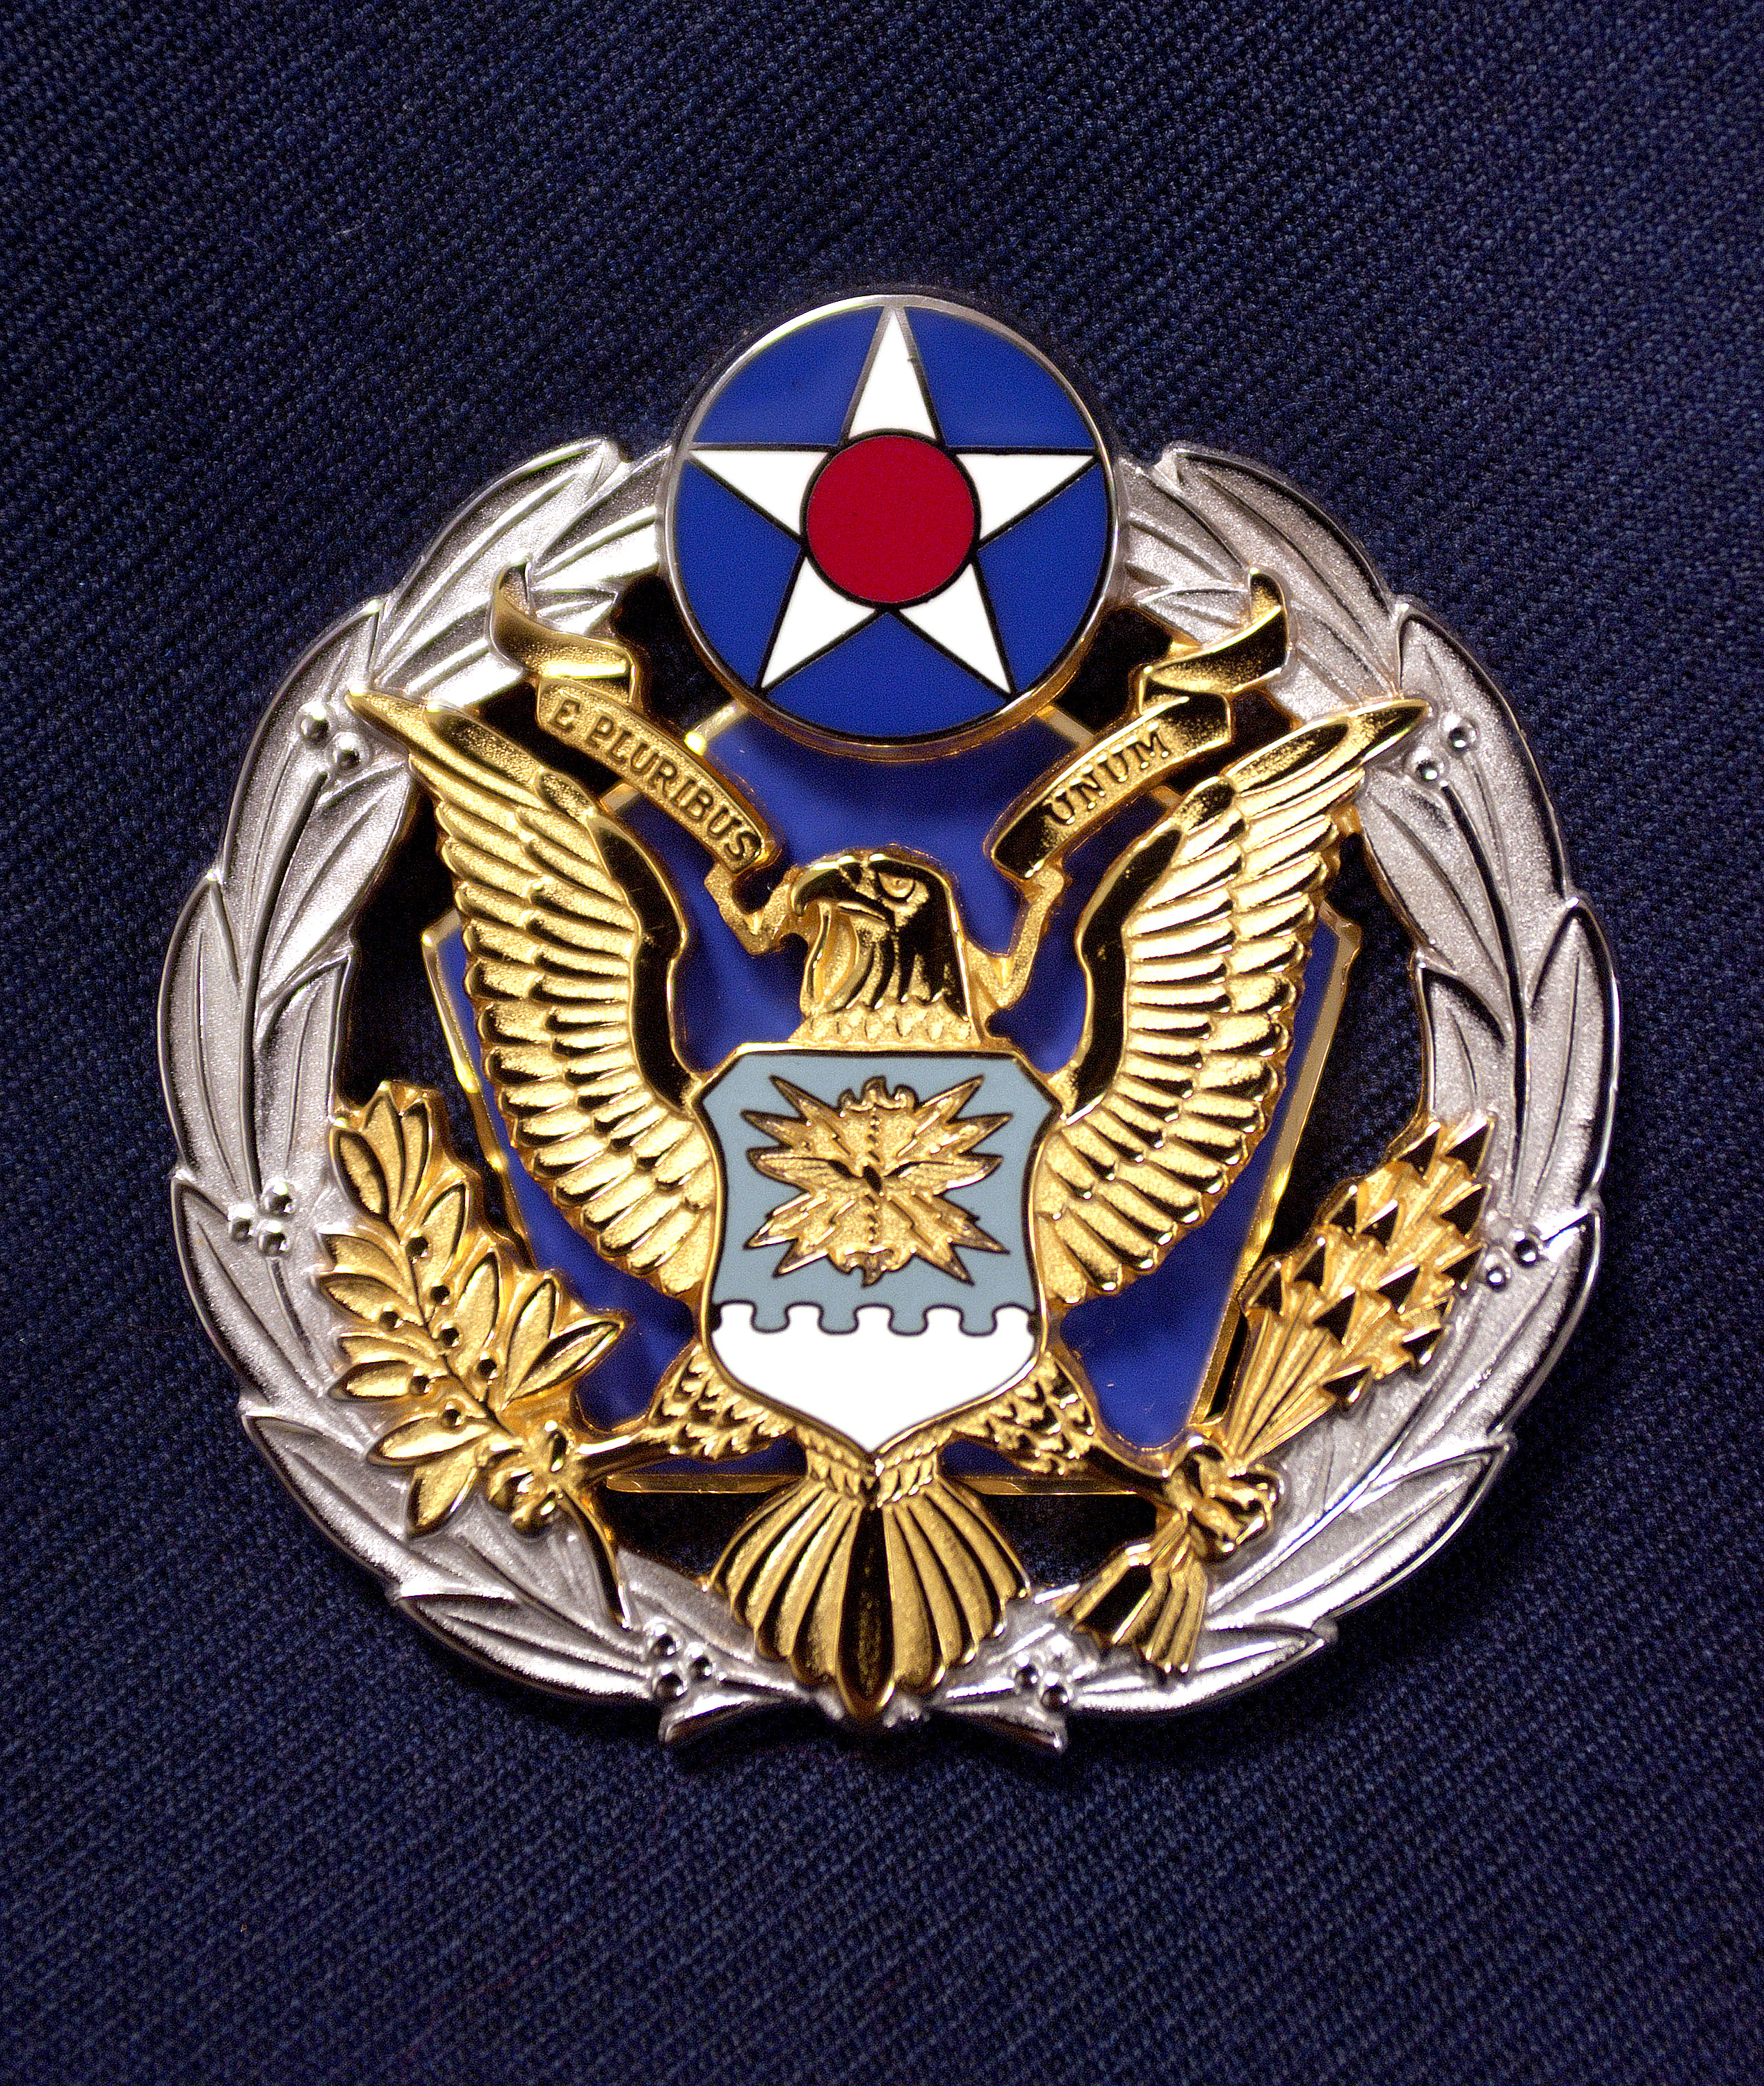 New air staff badge recognizes pentagon assignment gt u s air force